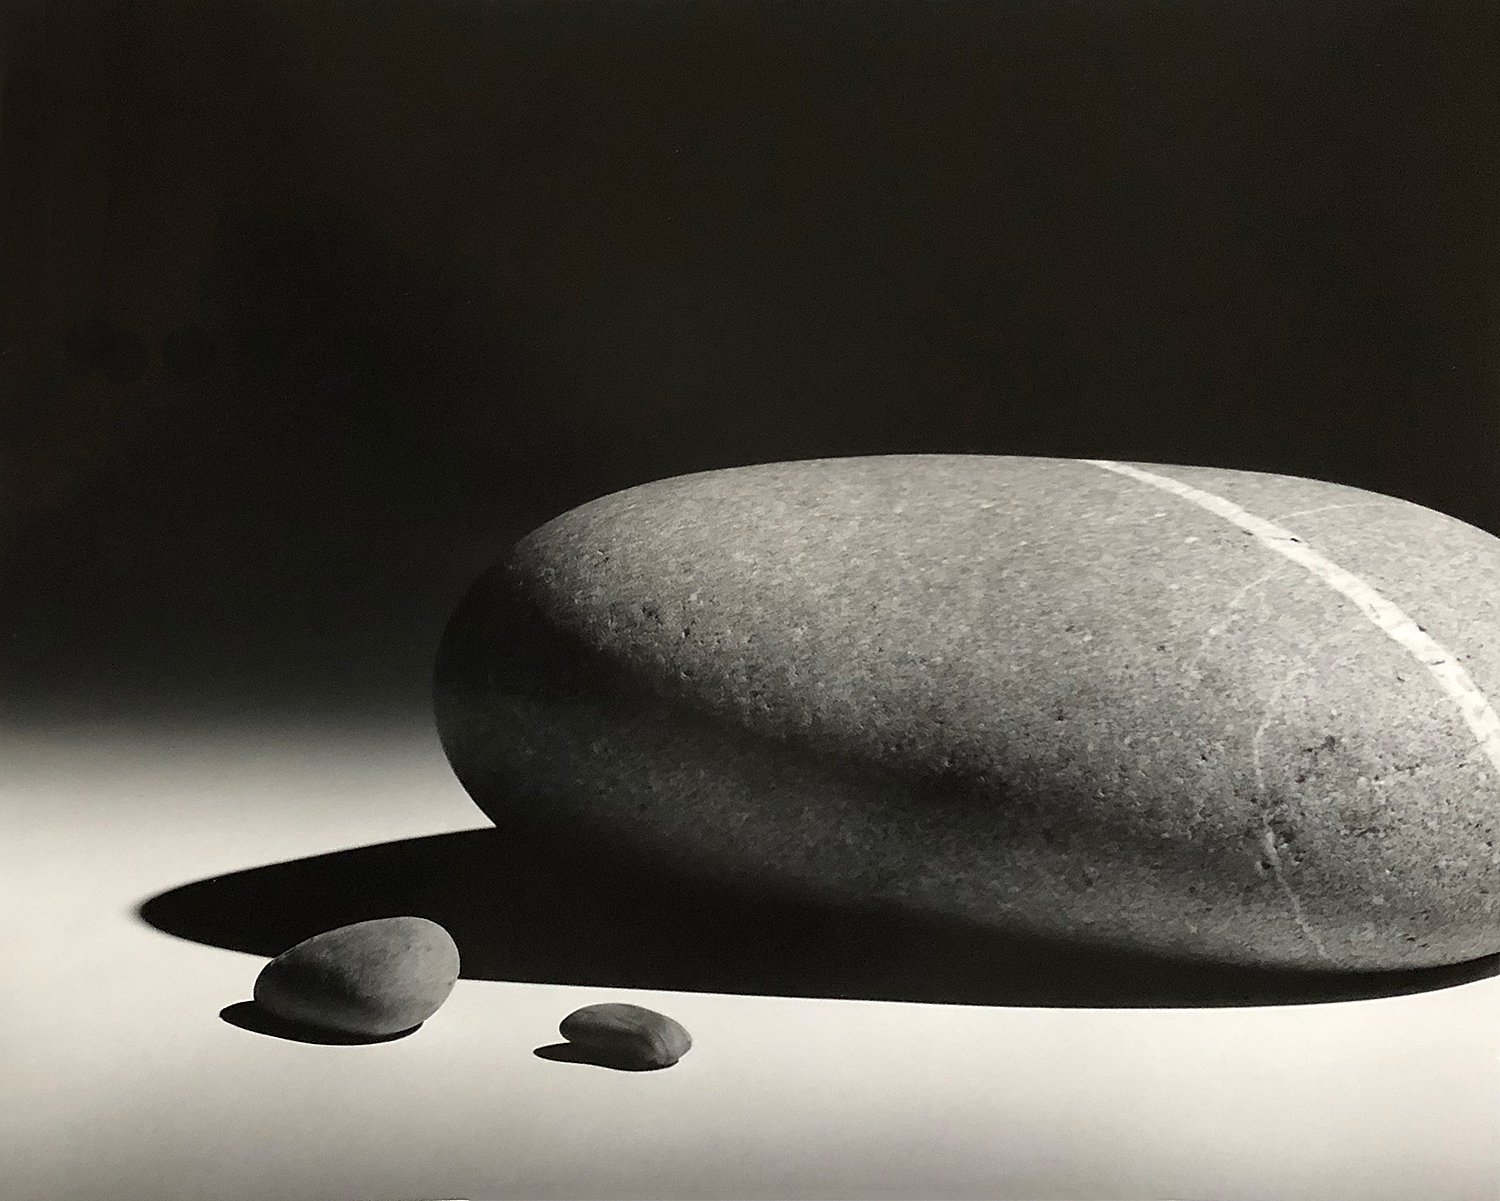 B&W photo of three rocks